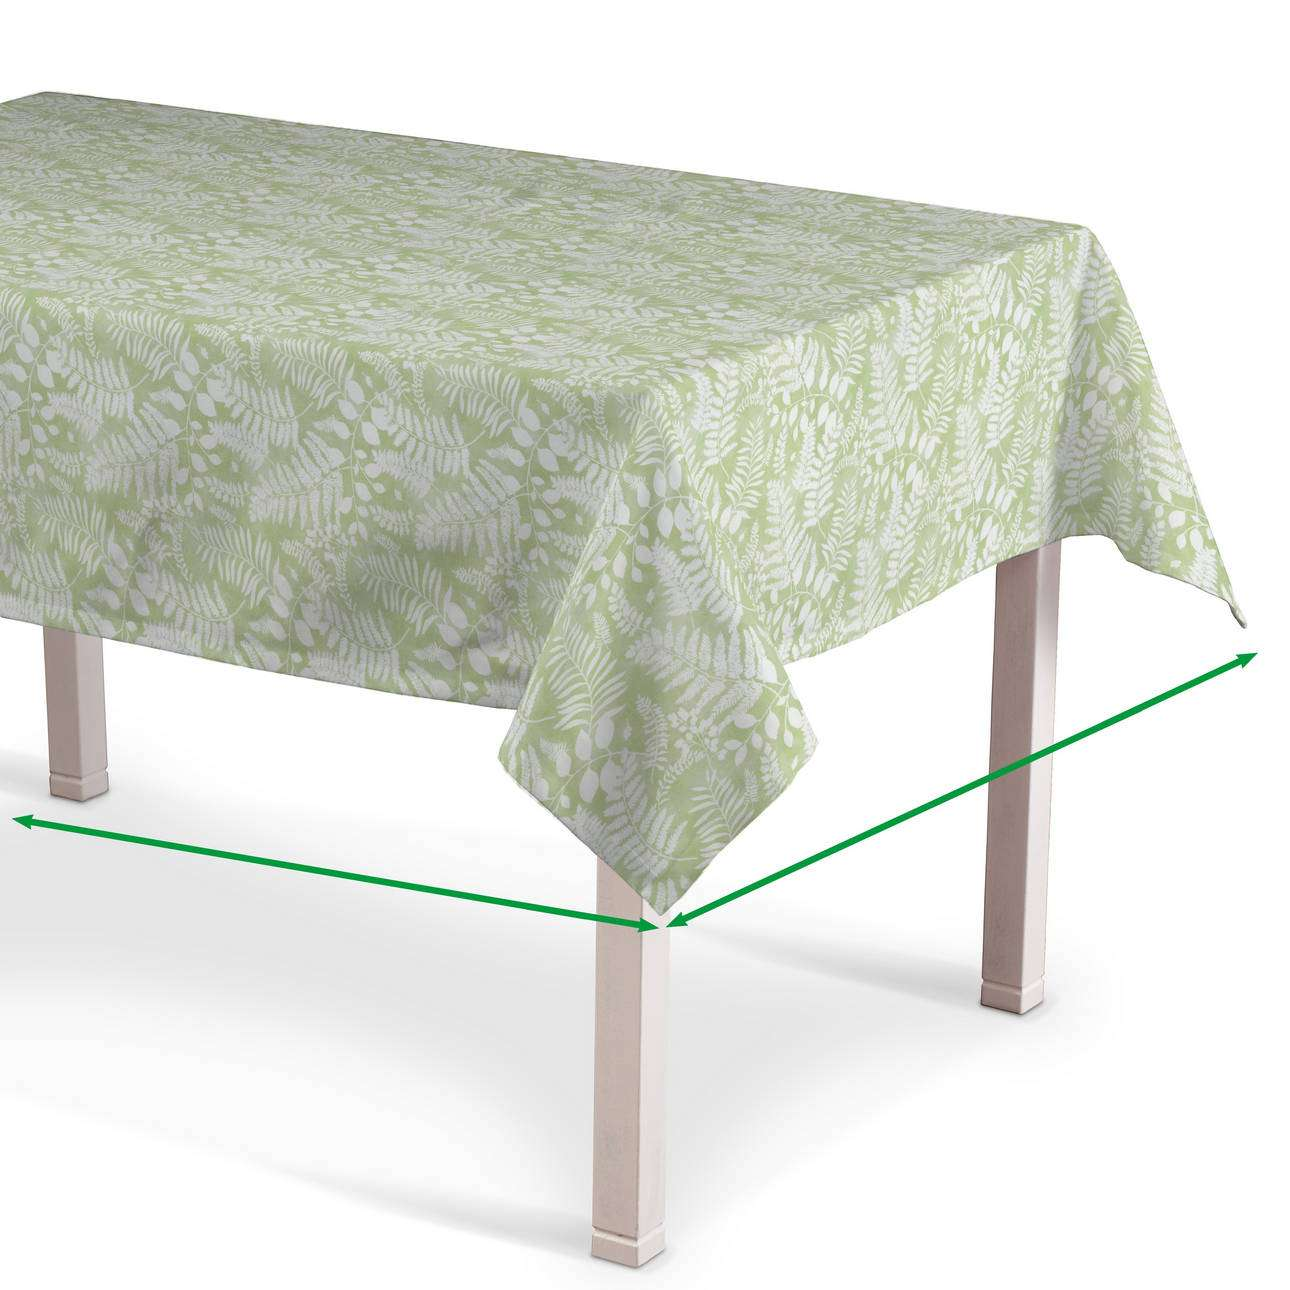 Rectangular tablecloth in collection Pastel Forest, fabric: 142-49